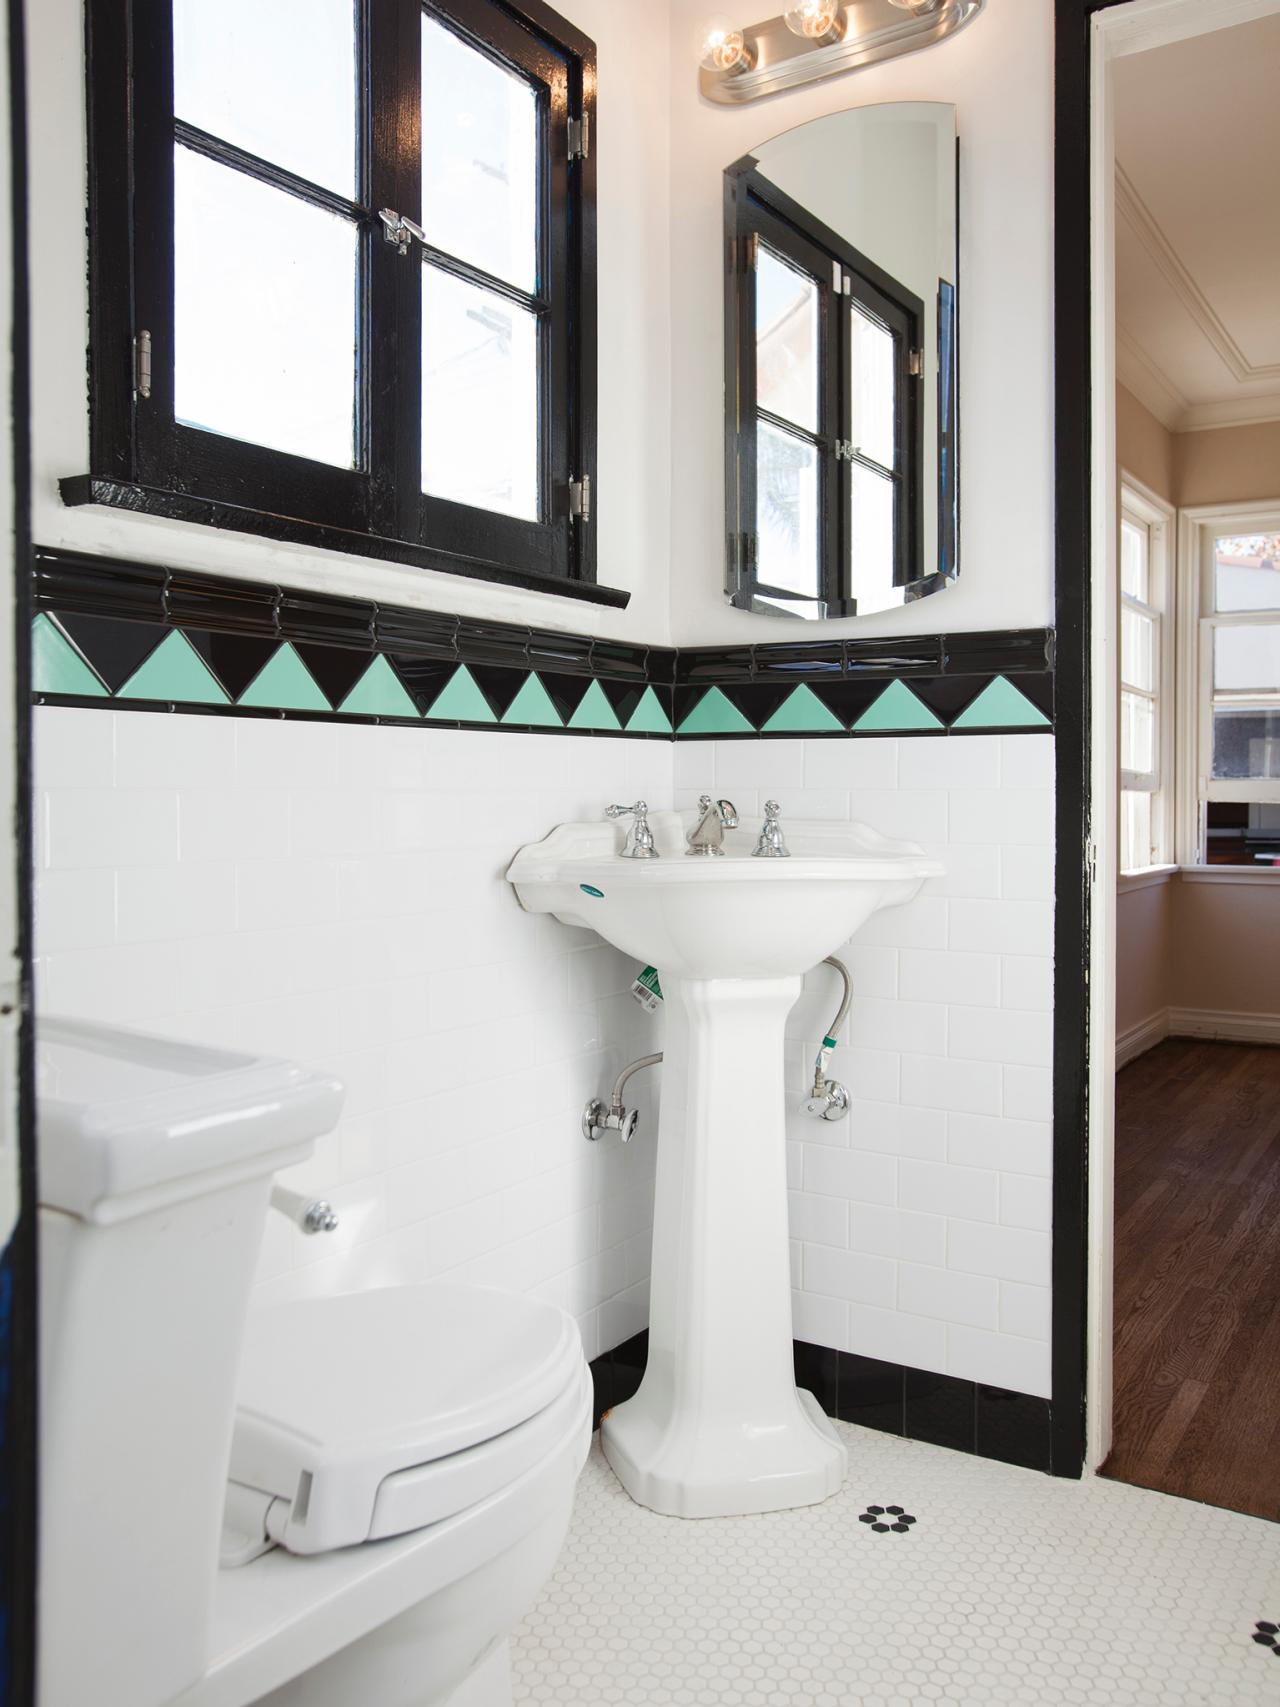 Affordable-art-deco-bathroom-vanity-light-fixtures